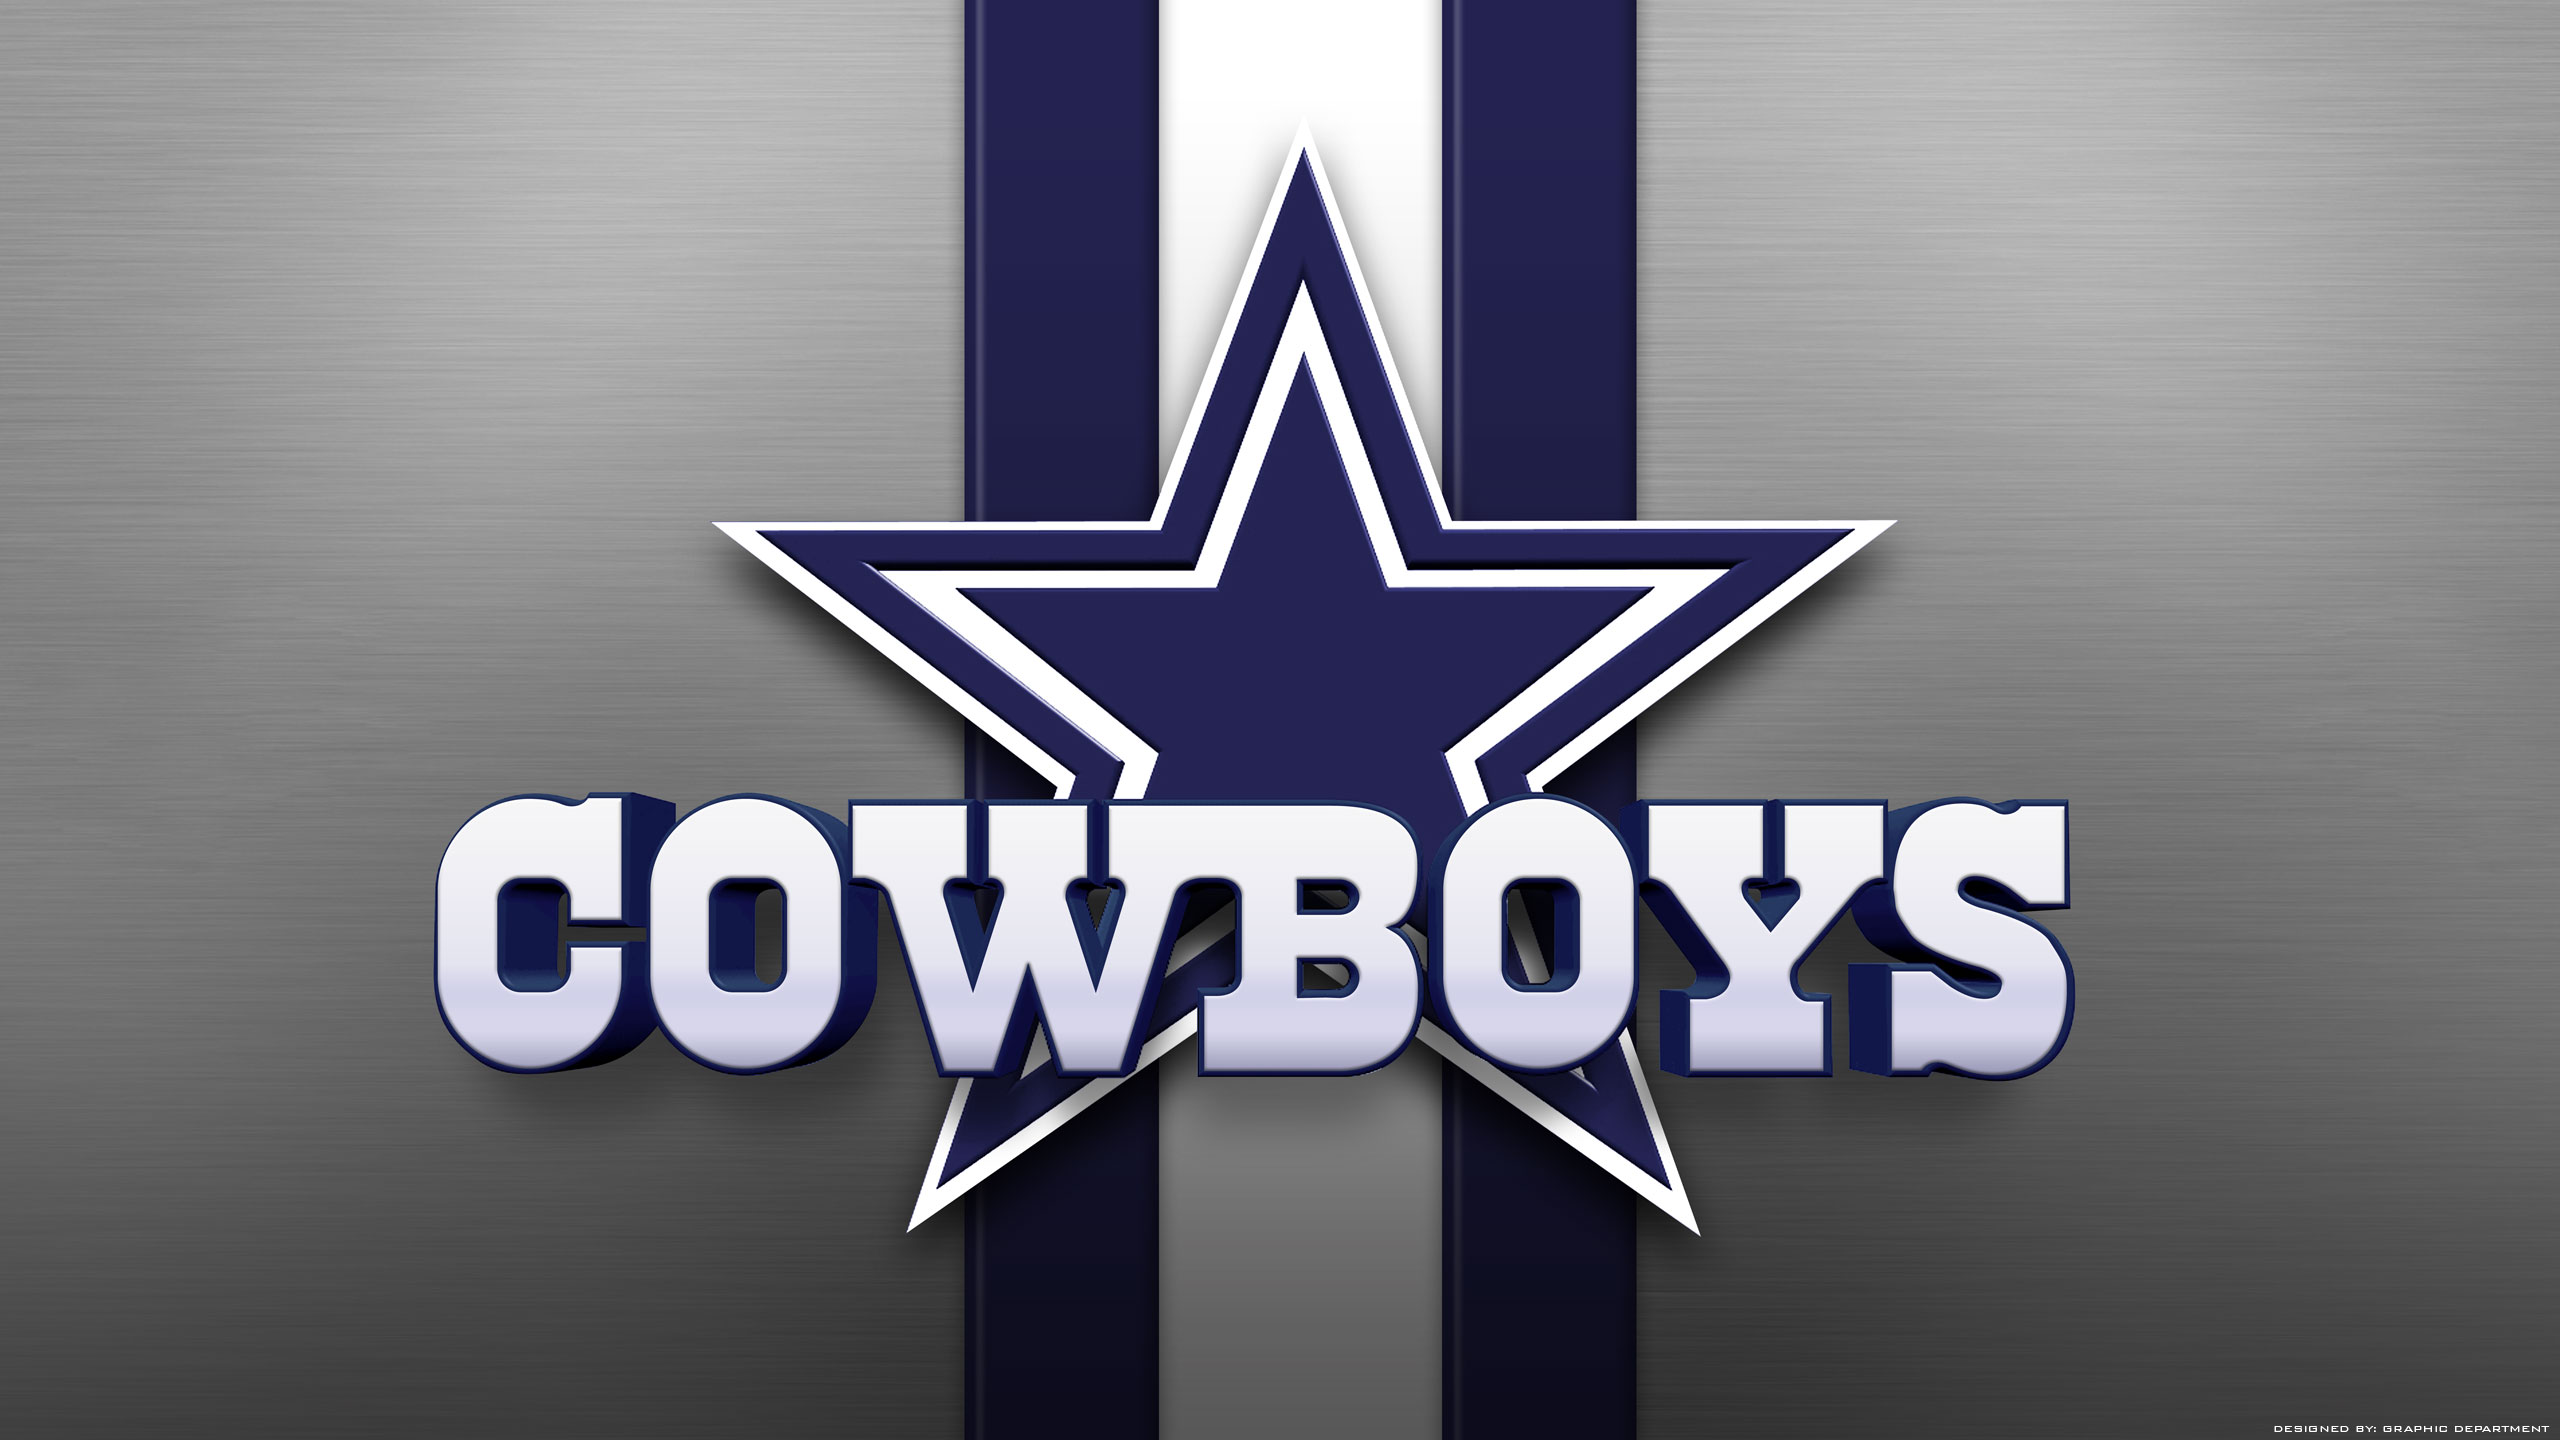 Dallas cowboys clipart window. Free cowboy wallpaper cliparts